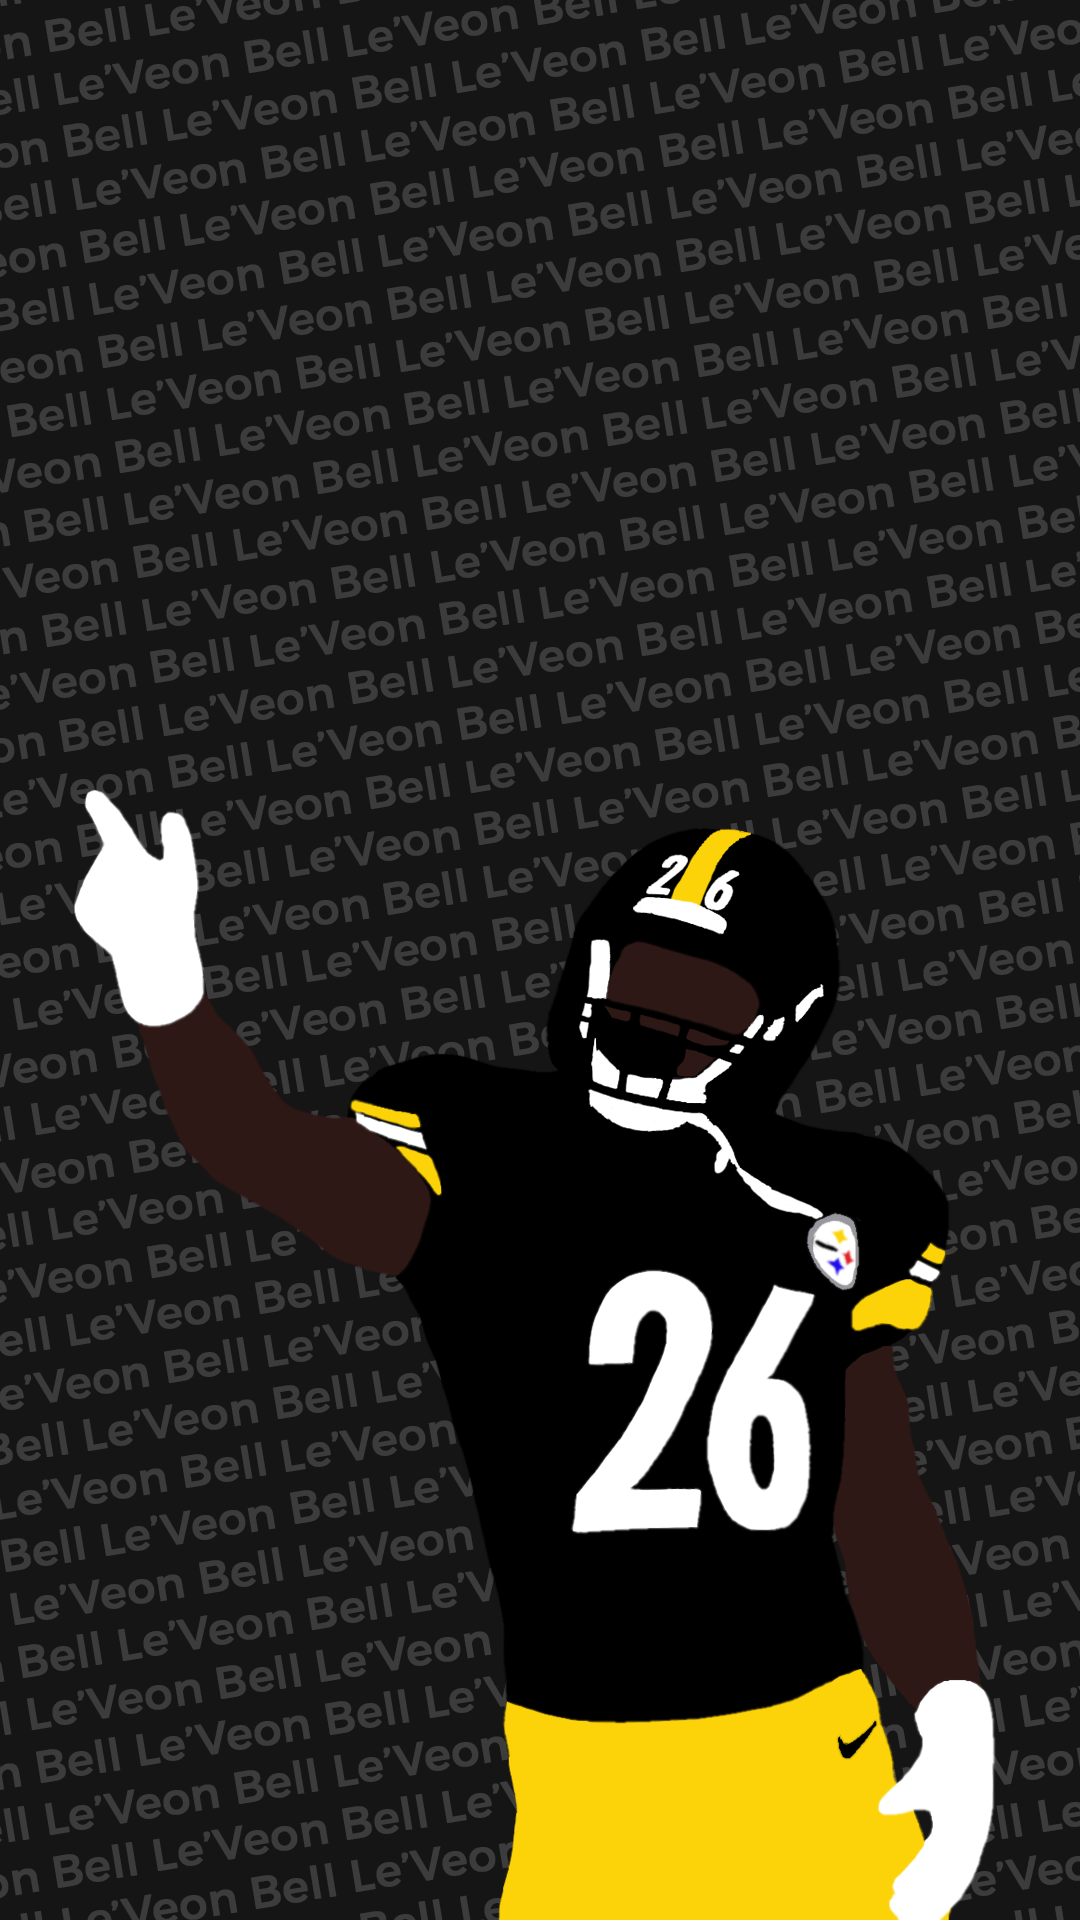 I made another wallpaper, this one with Le'Veon Bell : steelers